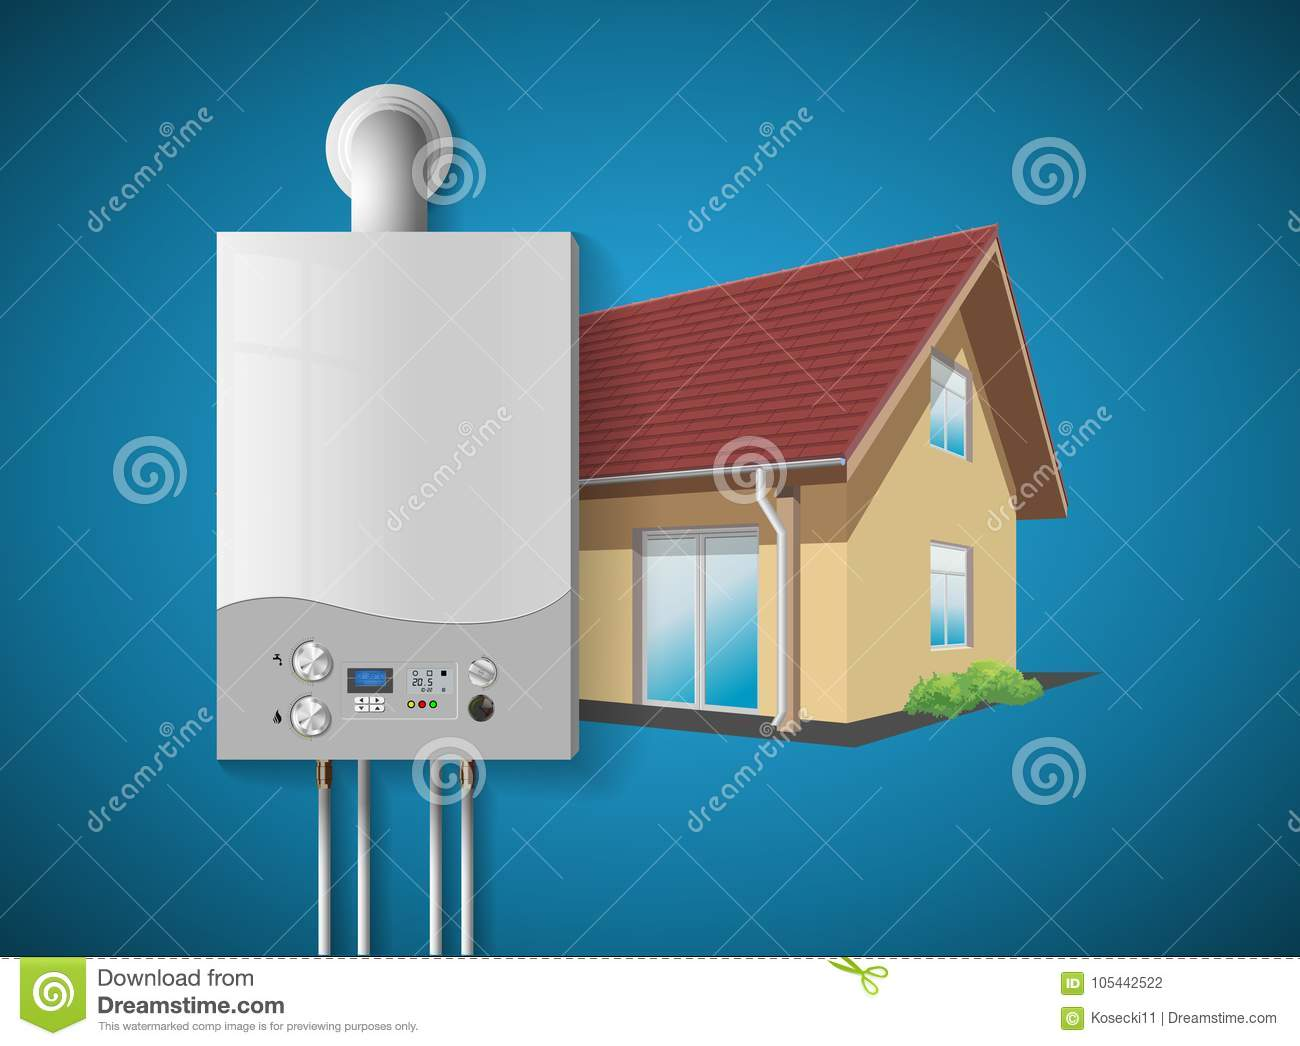 House Heating Concept - Modern Home Gas Fired Boiler - Energy And ...